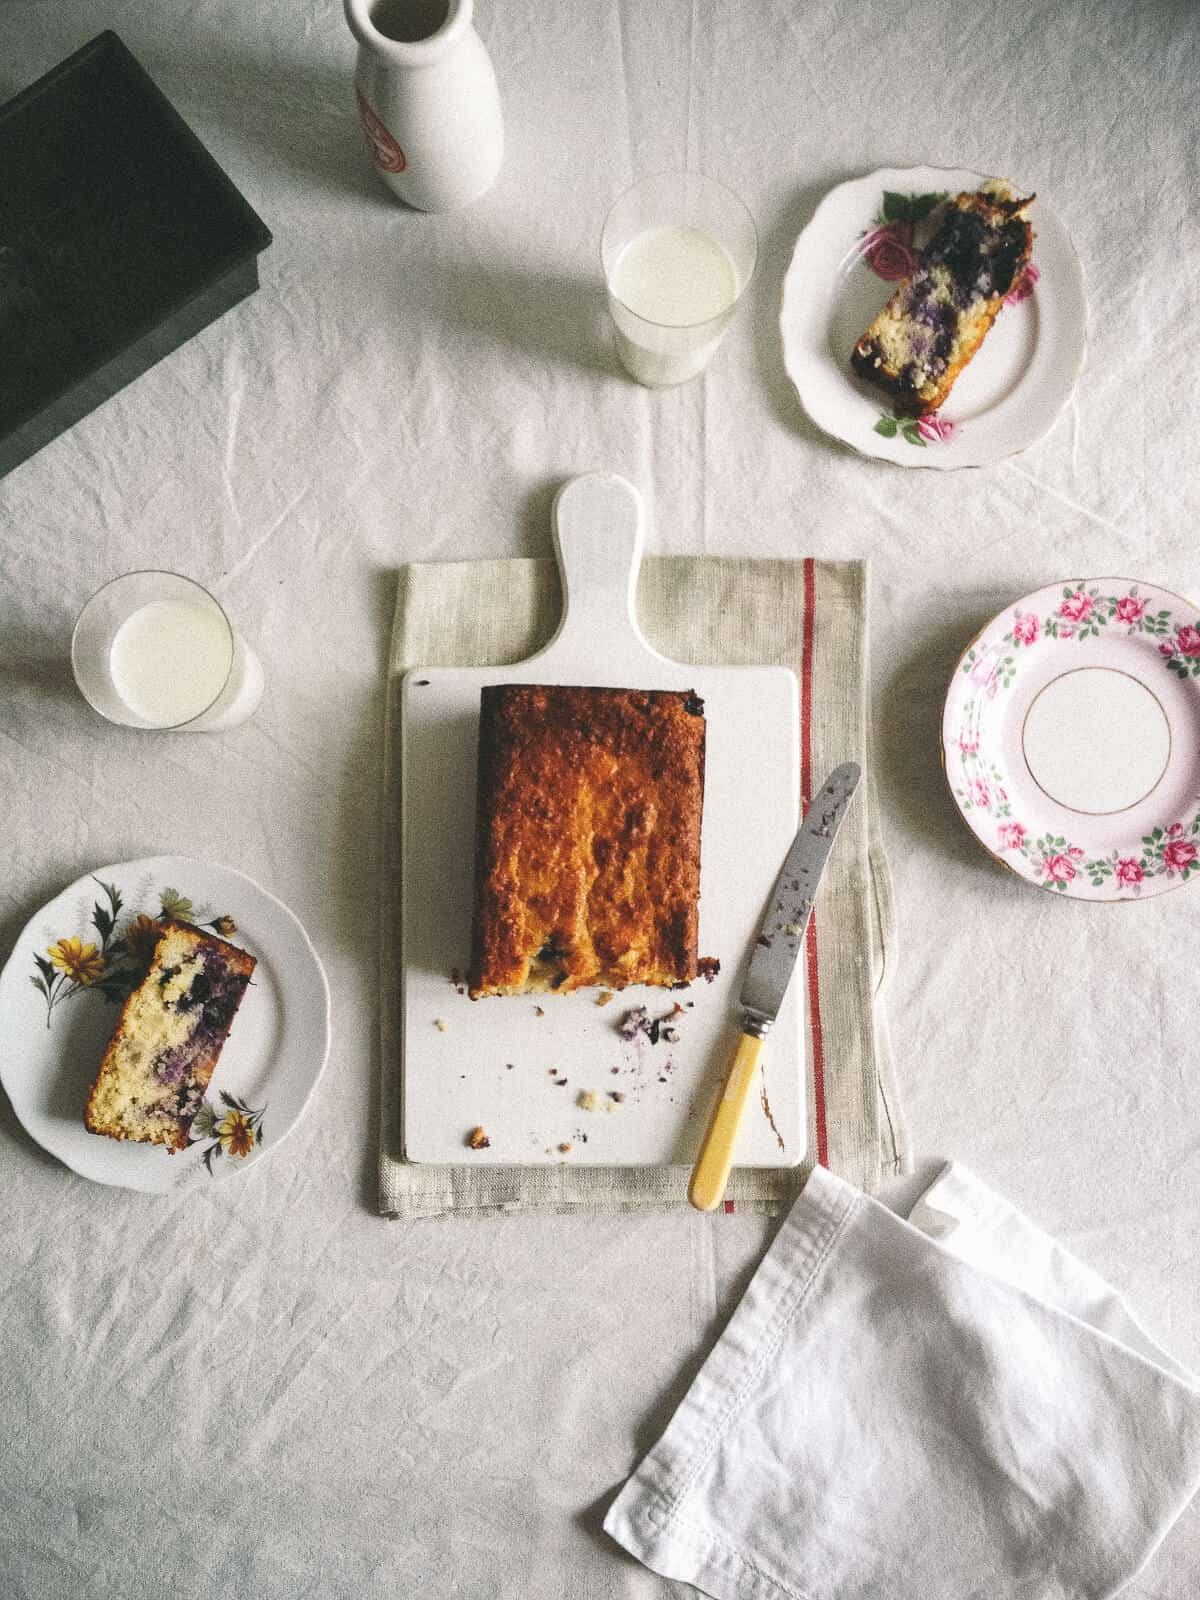 a to[pp down view of a cake on table with plates and slices of cake